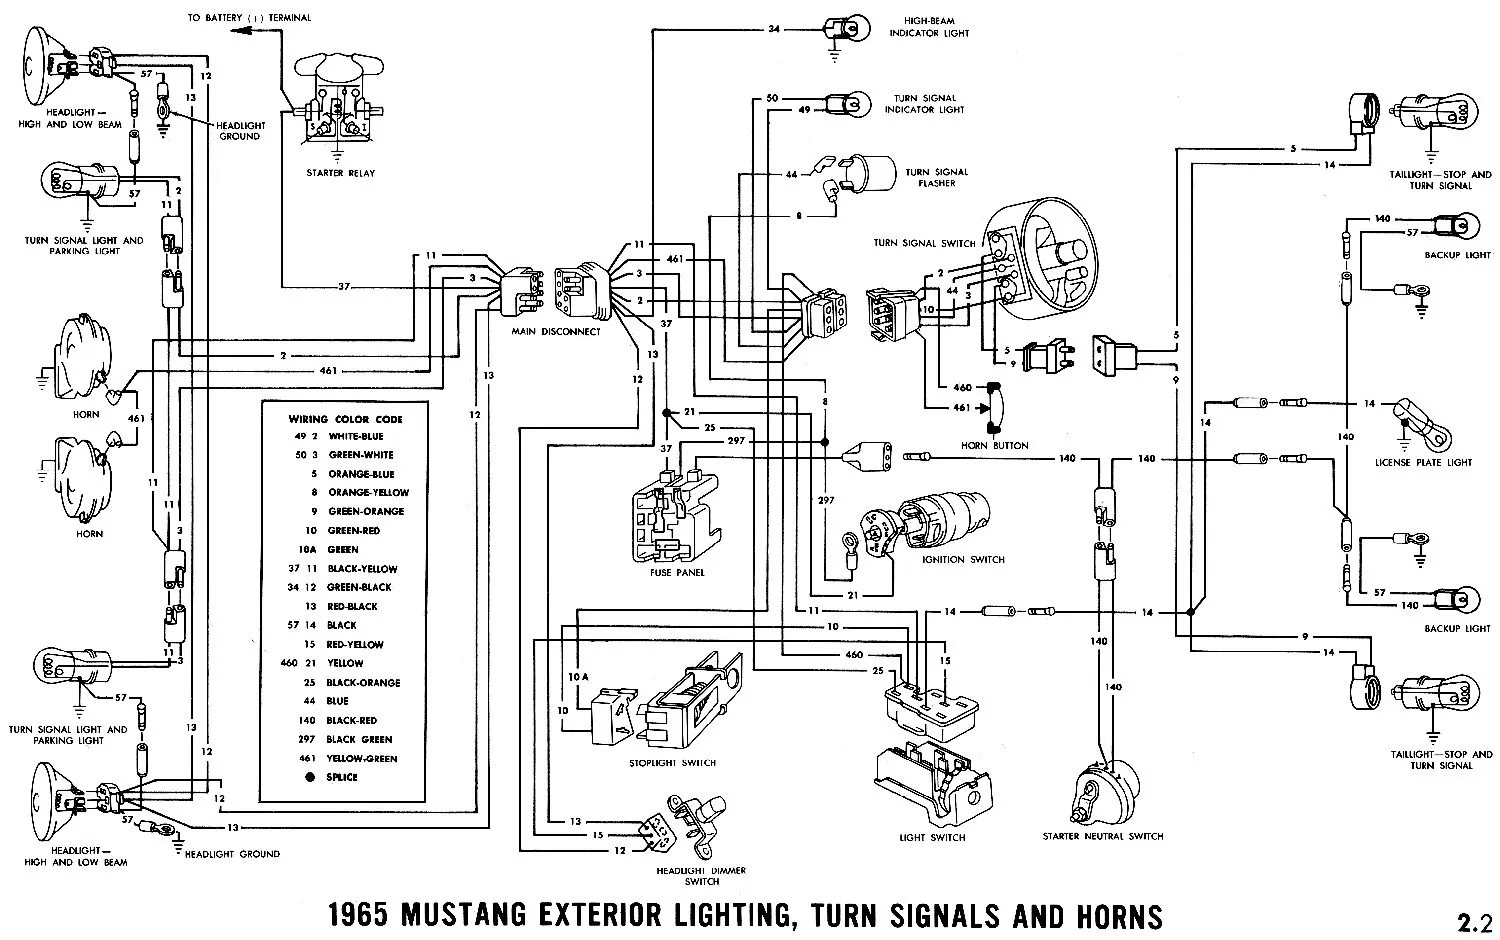 hight resolution of 1965 mustang wiring diagrams average joe restoration 2013 mustang gt wire diagram